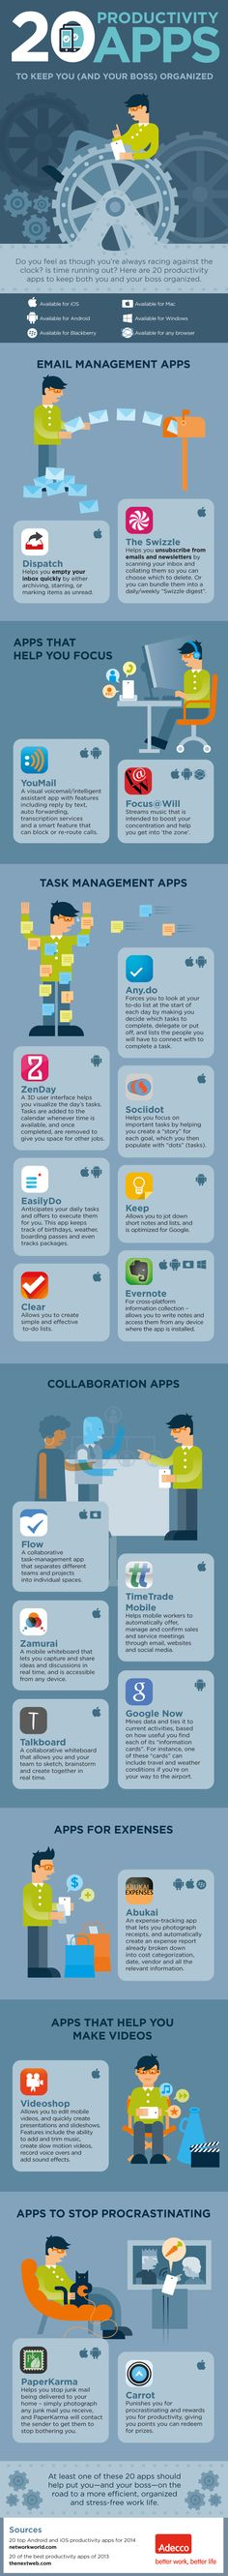 20 iOS and android apps That Turn Your Smartphone Into a Productivity Powerhouse - #Infographic